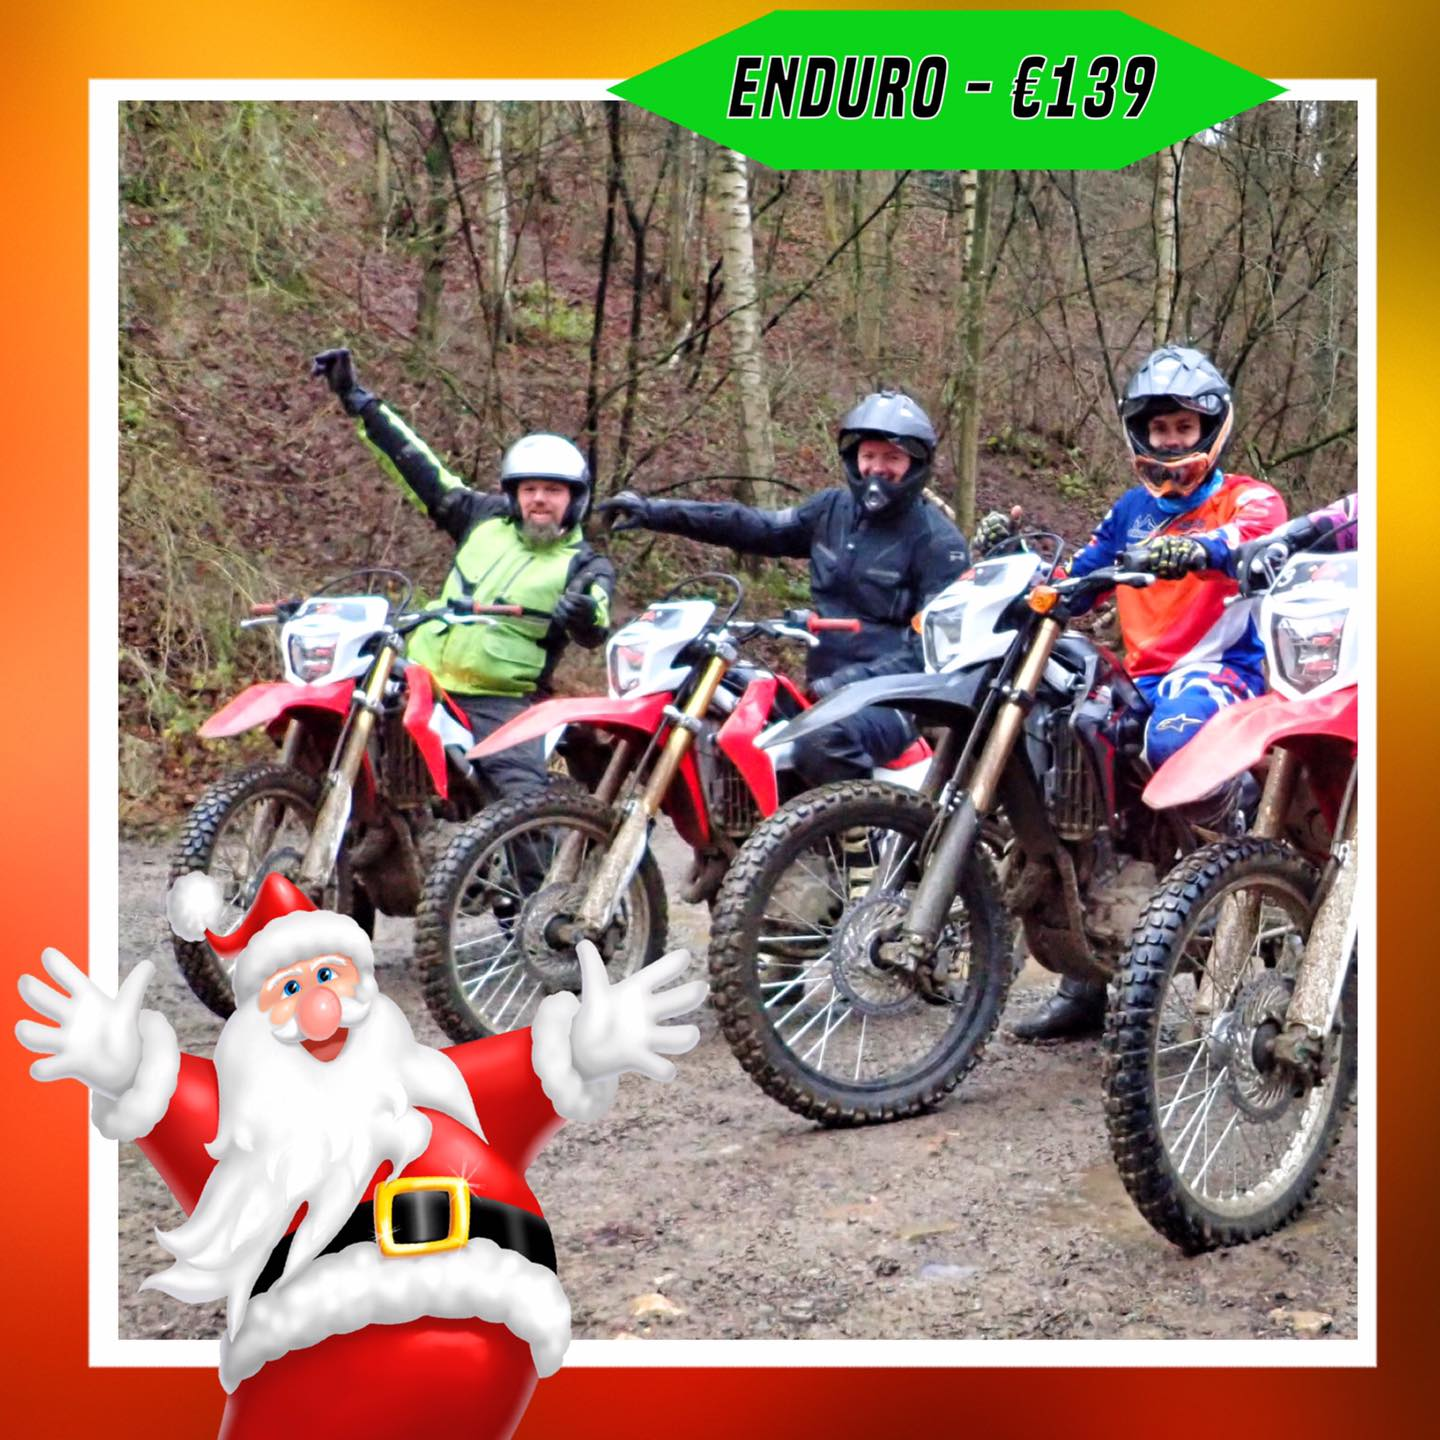 Kerst-initiaties Bilstain Endurofun 10